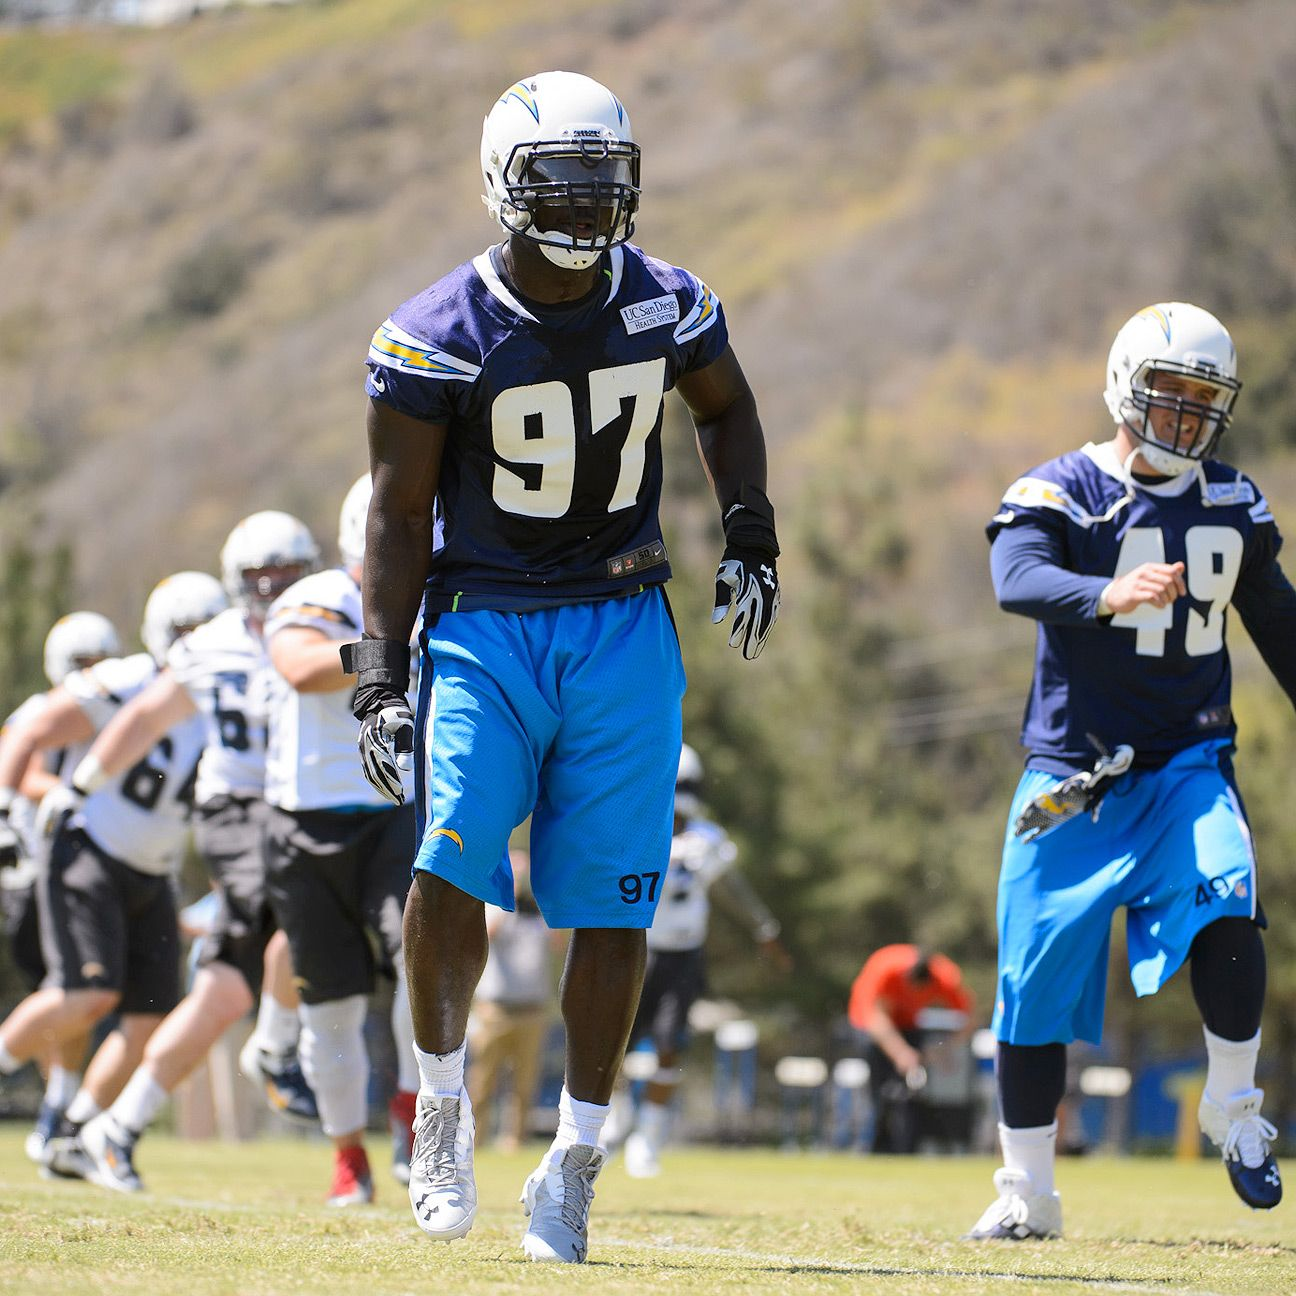 San Diego Chargers Blogs: San Diego Chargers' Jerry Attaochu Developing Into Every